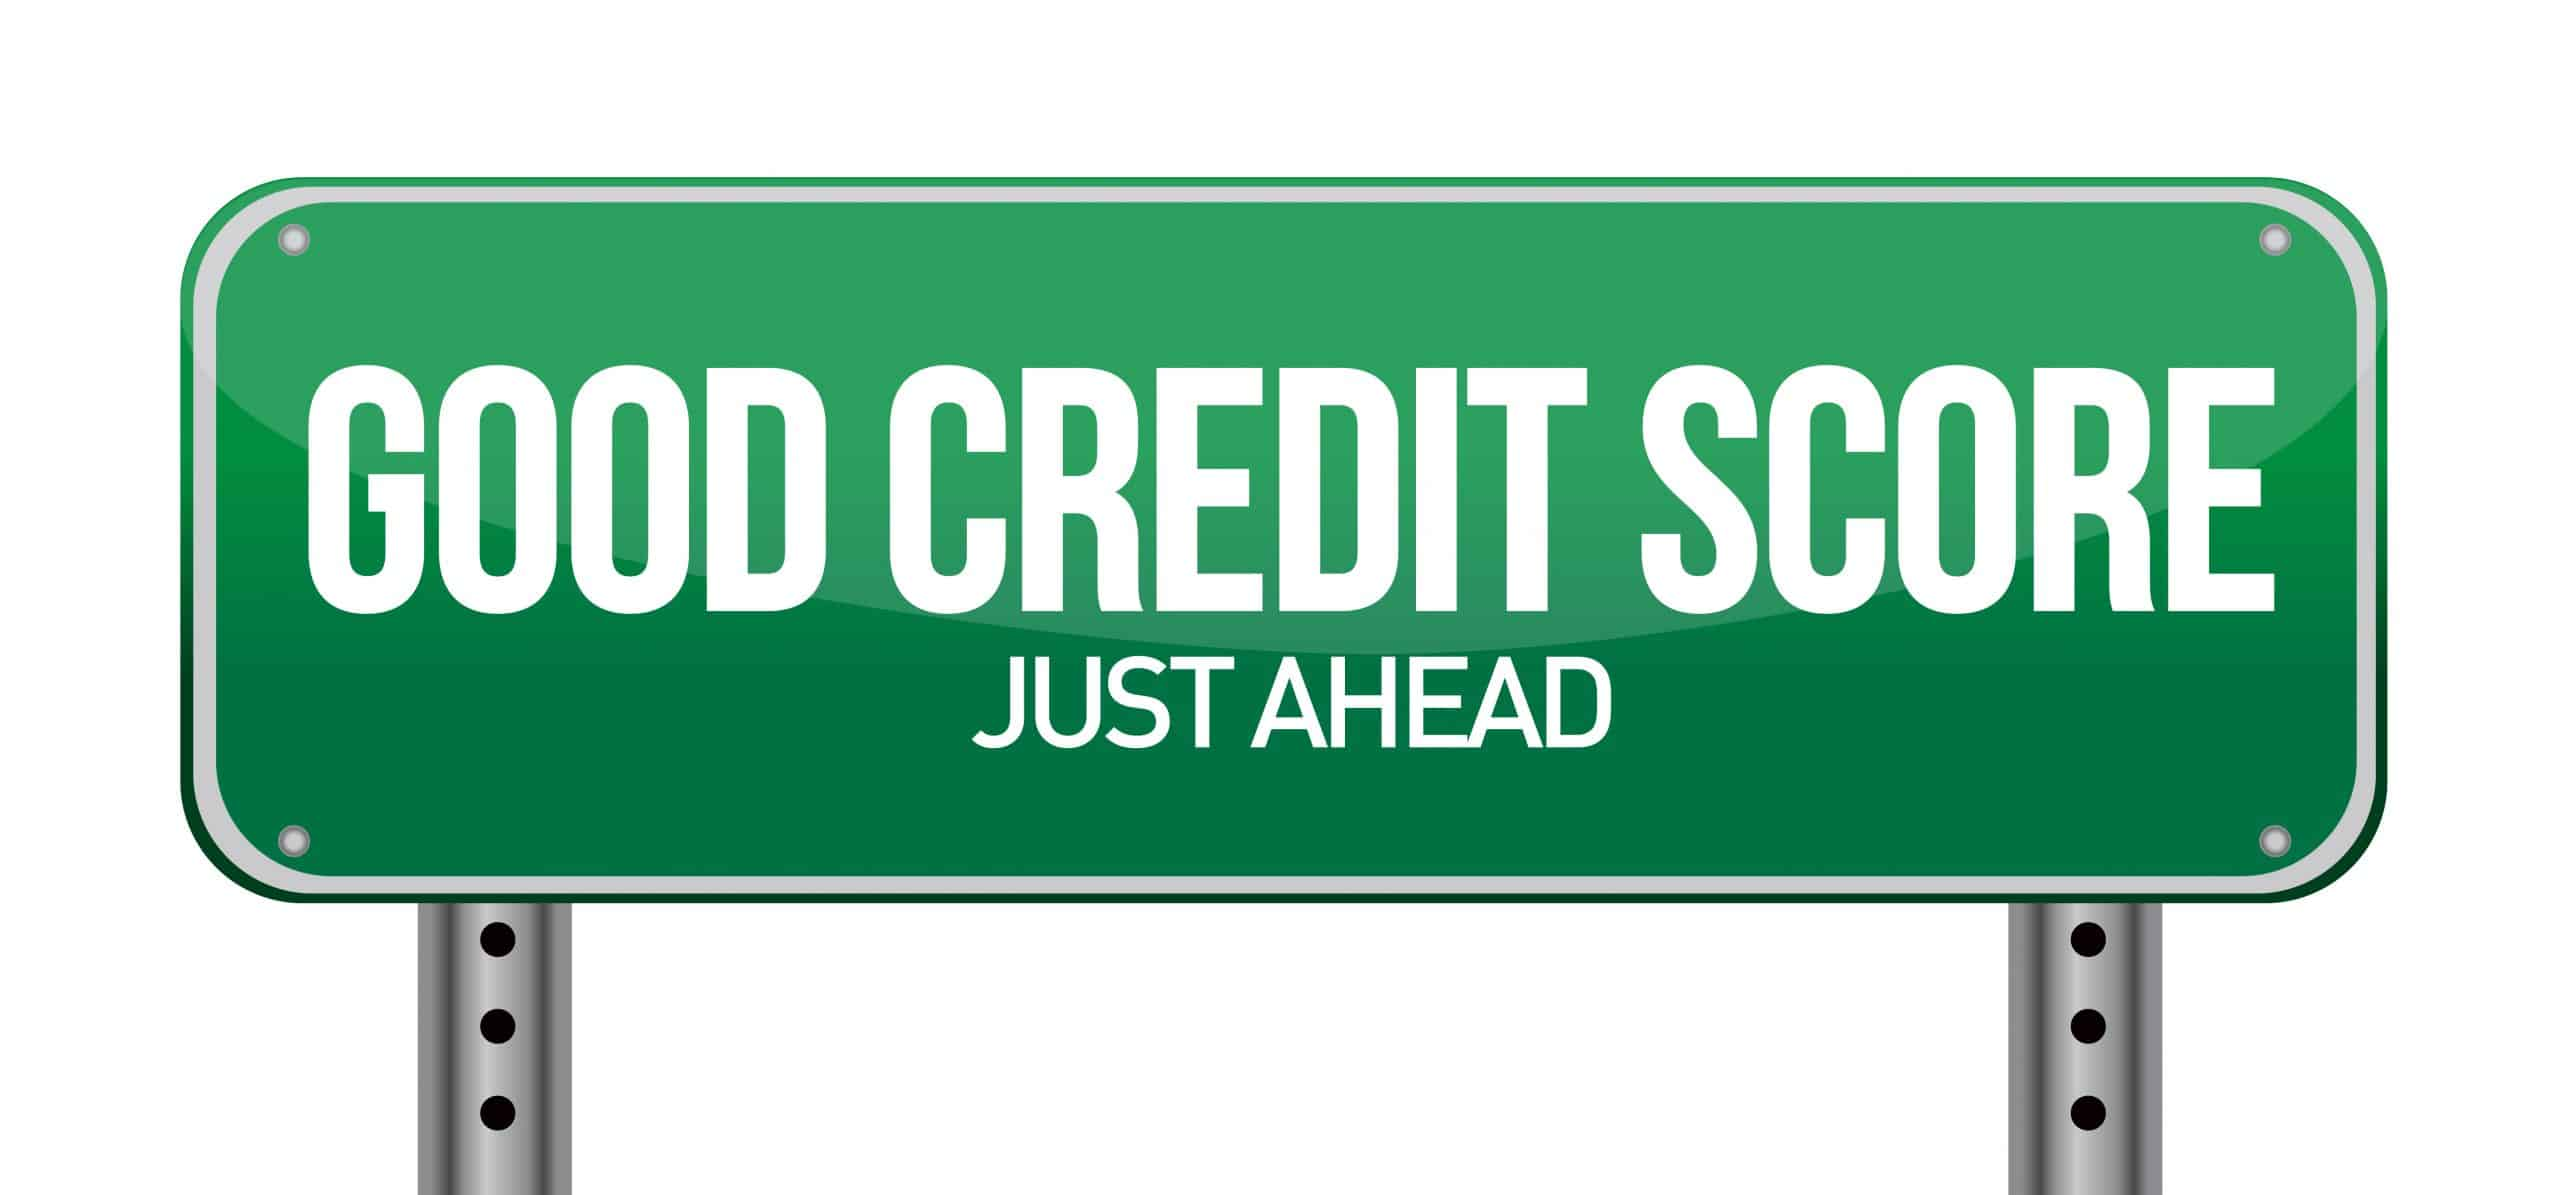 Thinking About A Credit Builder Loan? [Read This First]